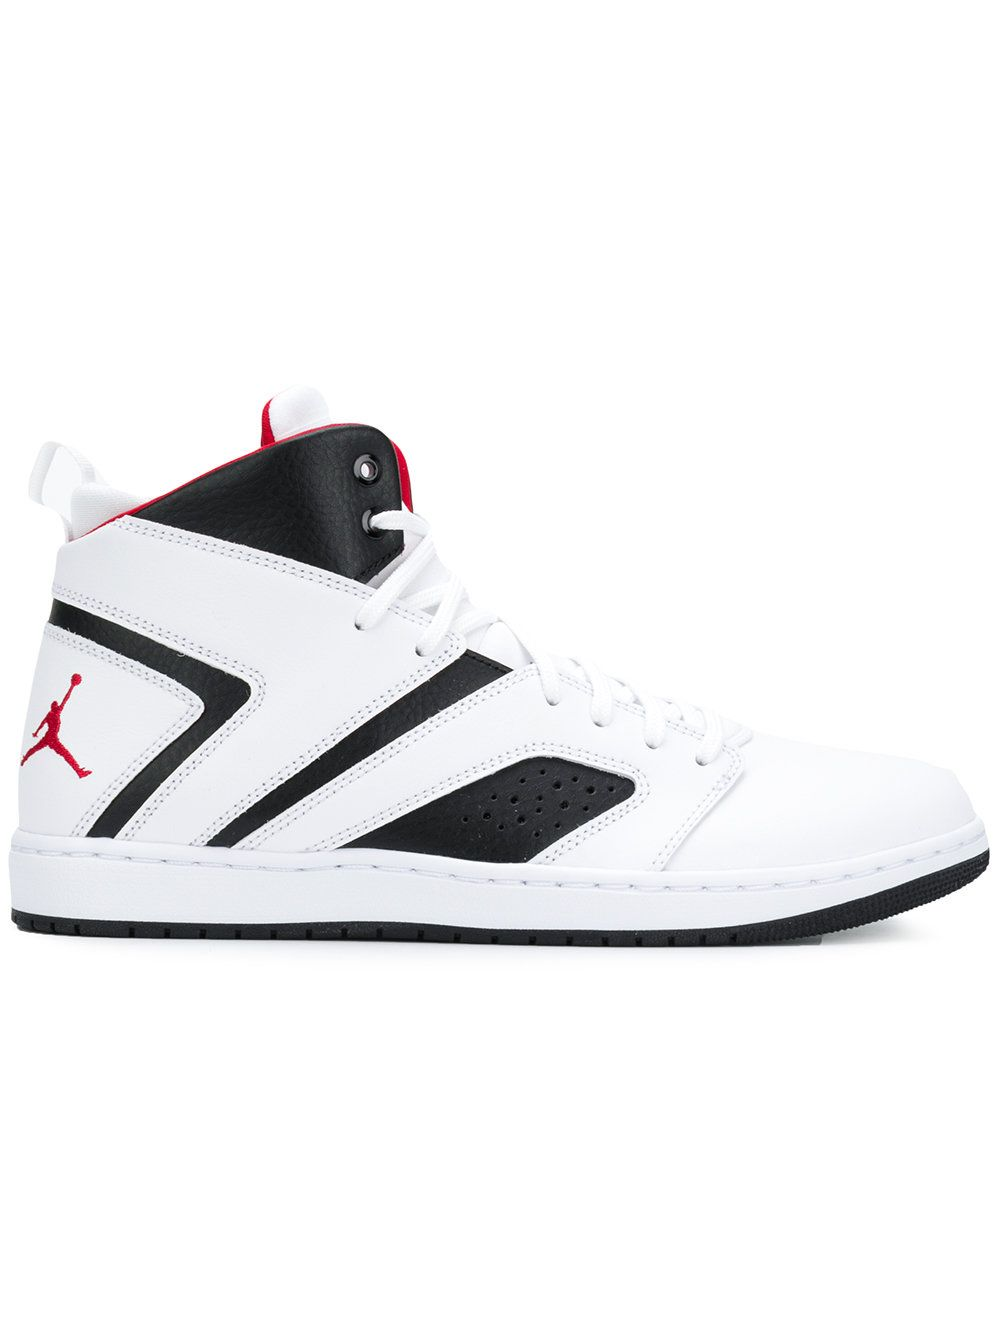 separation shoes 168e9 e2f0e Nike Jordan Flight Legend sneakers | Shoes | Sneakers, Jordans, Nike